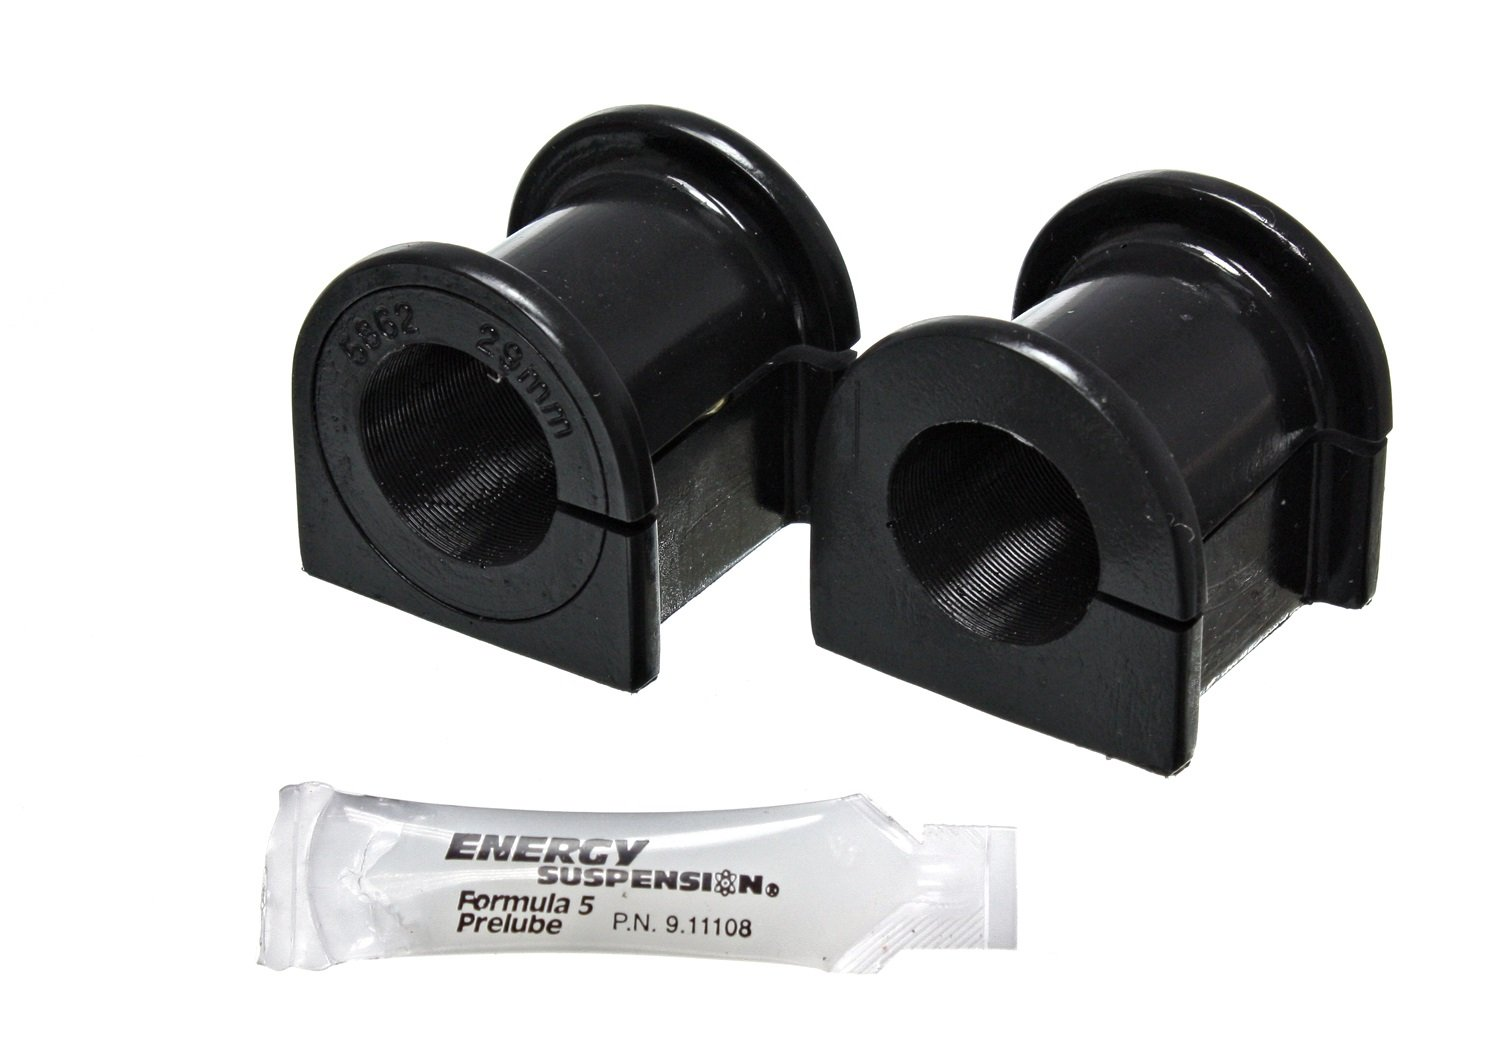 Energy Suspension 8.5135G FT SWAY BAR BUSHING SET 29mm by Energy Suspension